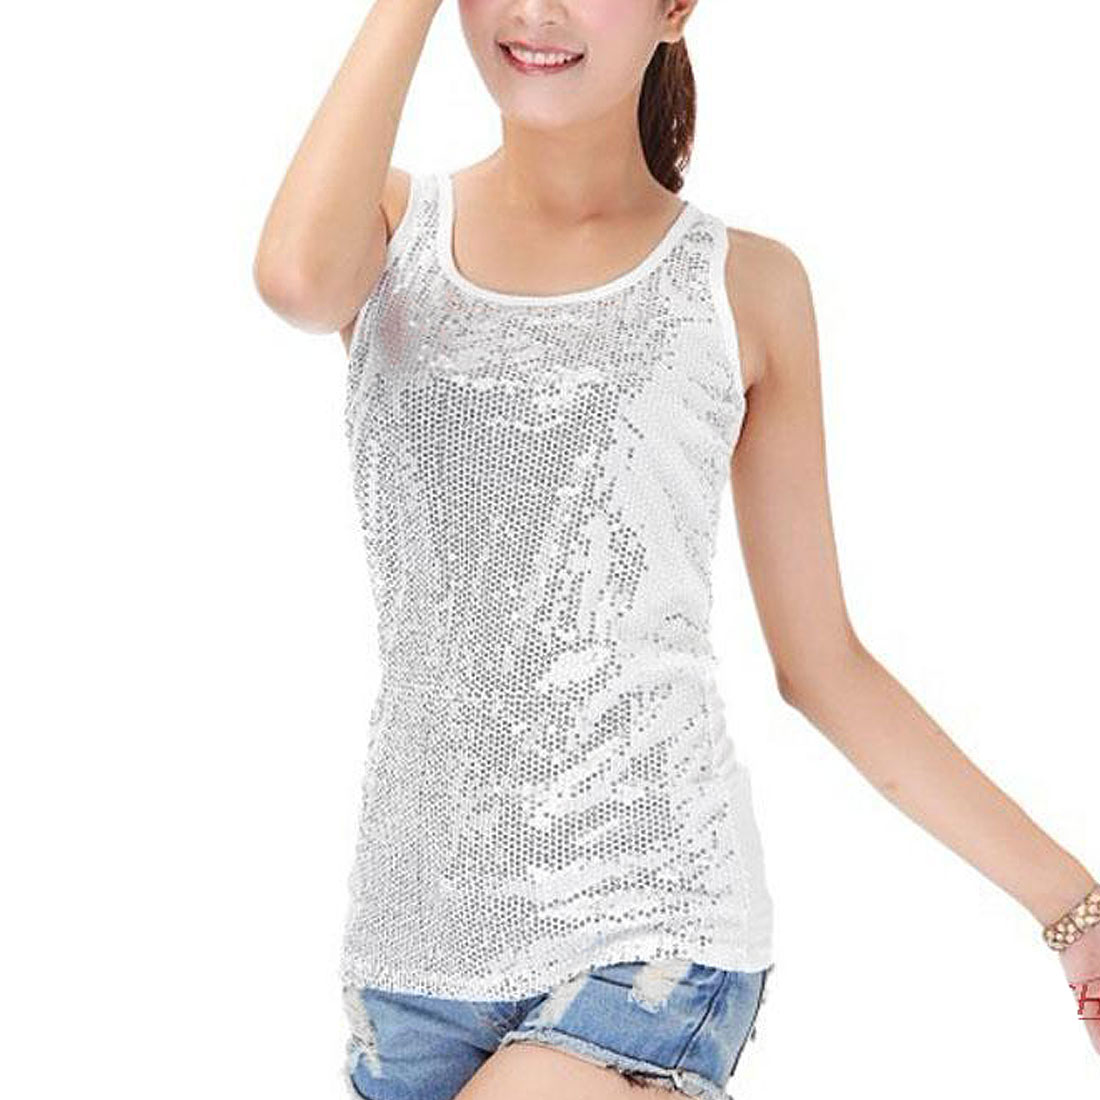 U Neck White Sequins Inlaid Summer Fashion Racerback Tank Top XS for Women